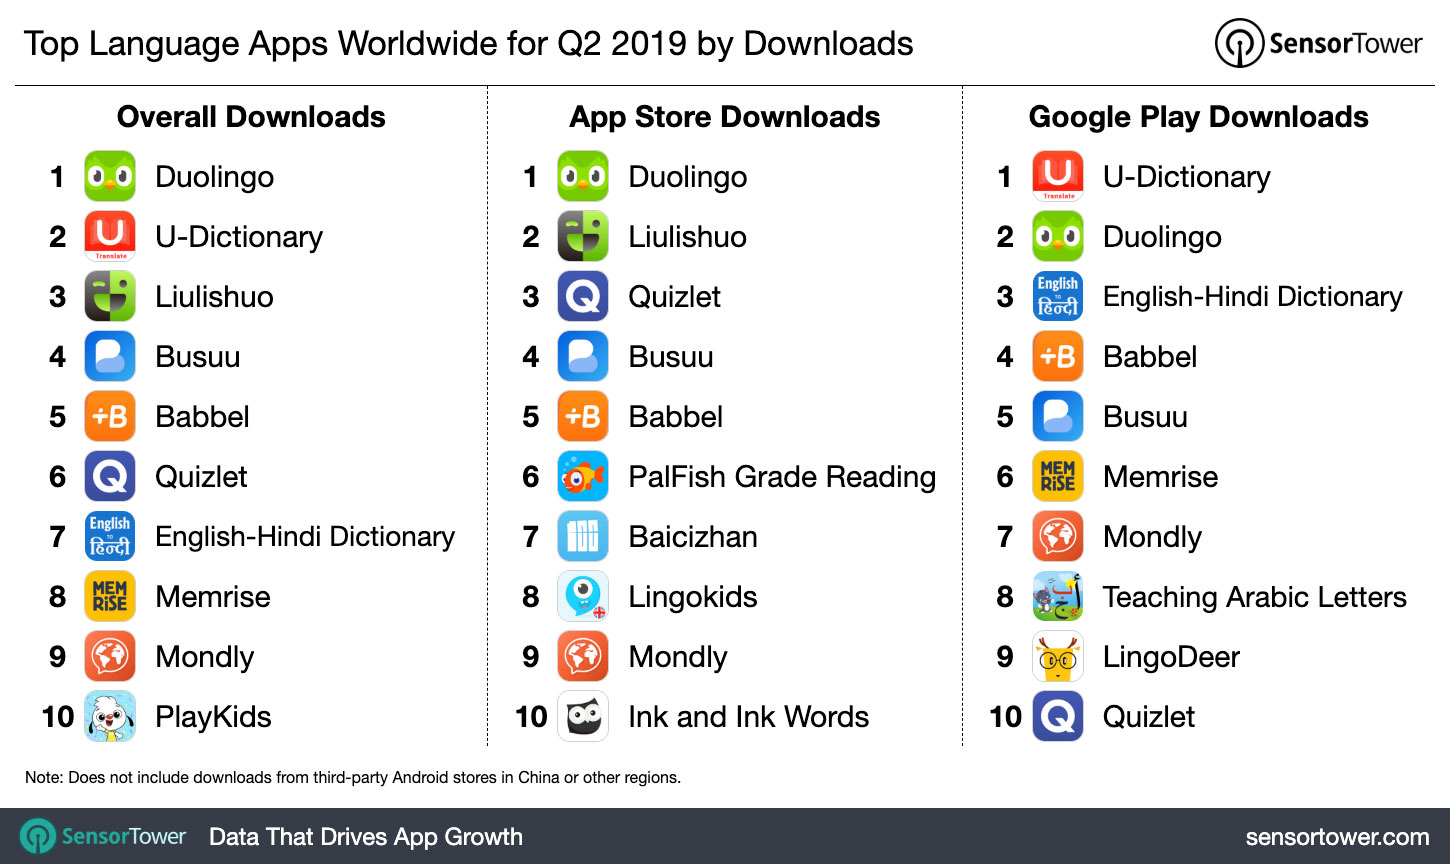 Top Language Apps Worldwide for Q2 2019 by Downloads